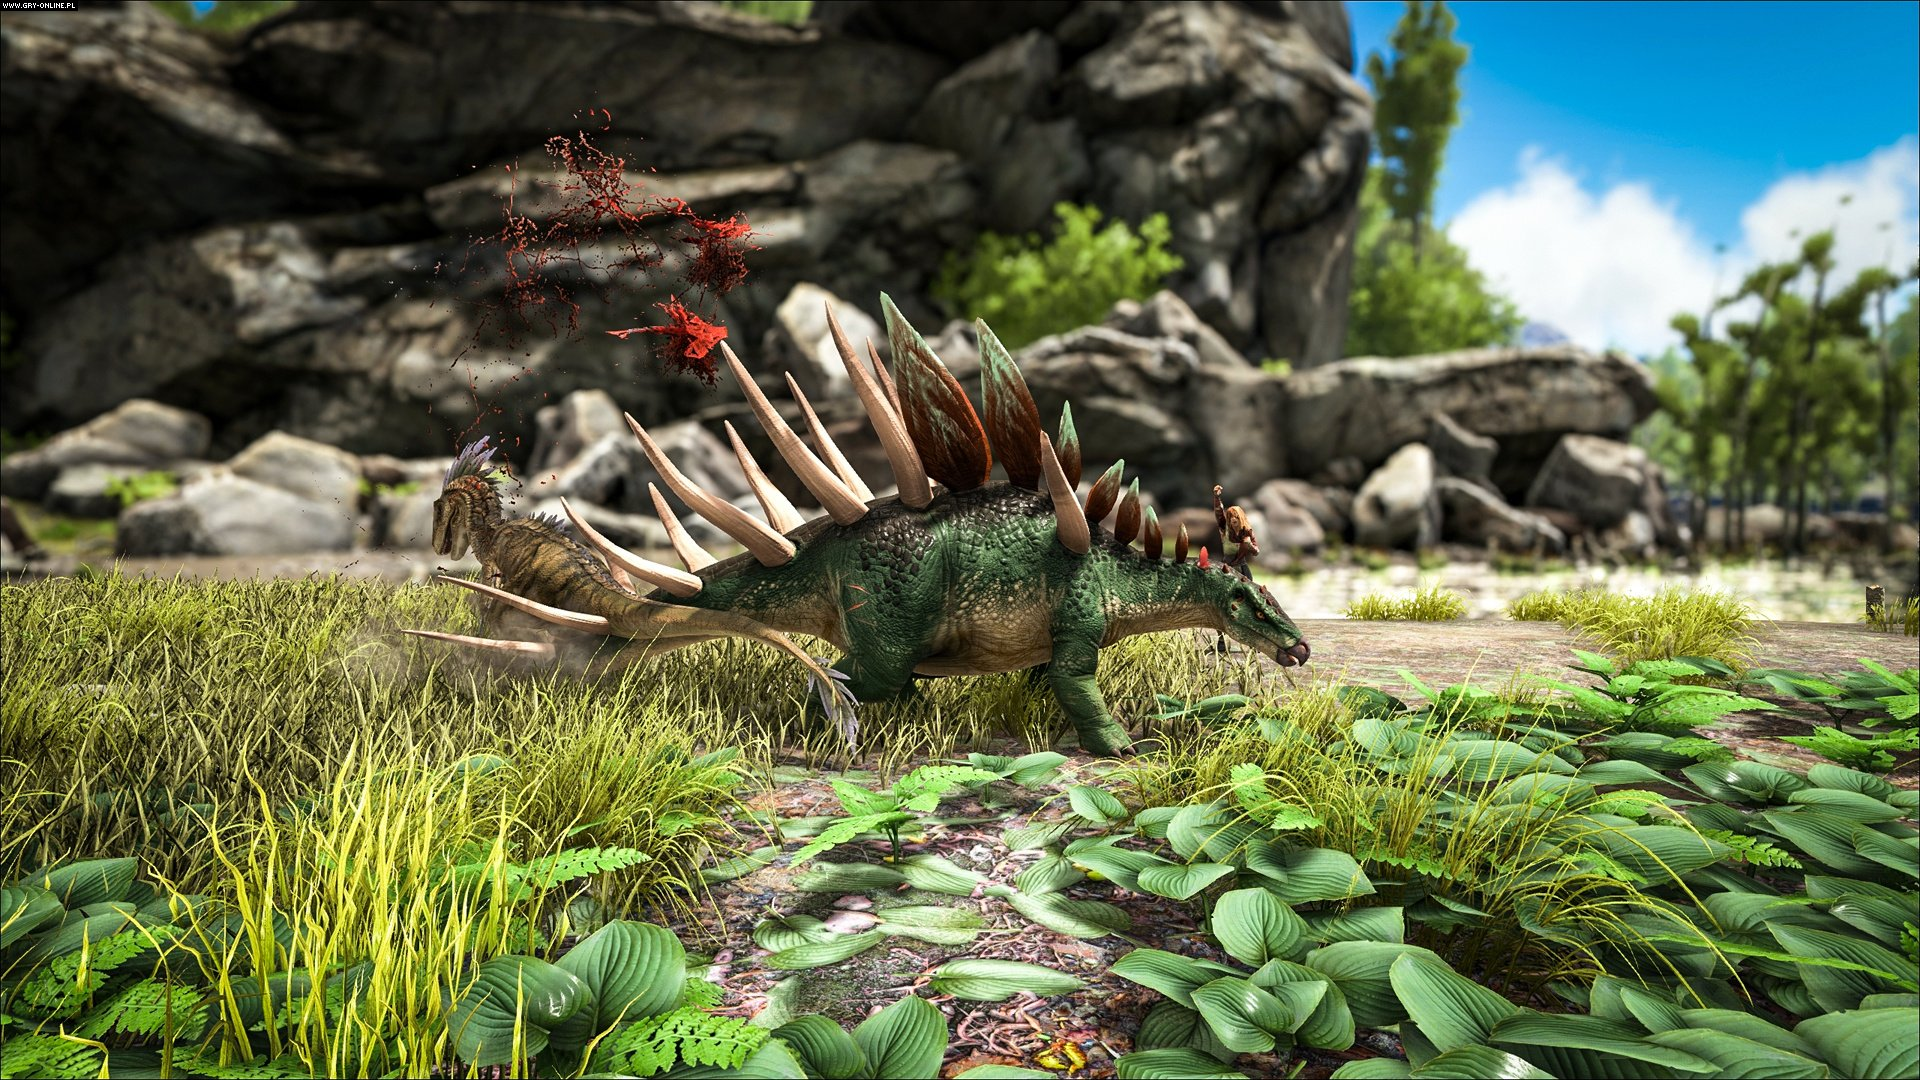 ARK: Survival Evolved PC, PS4, XONE Games Image 13/120, Studio Wildcard